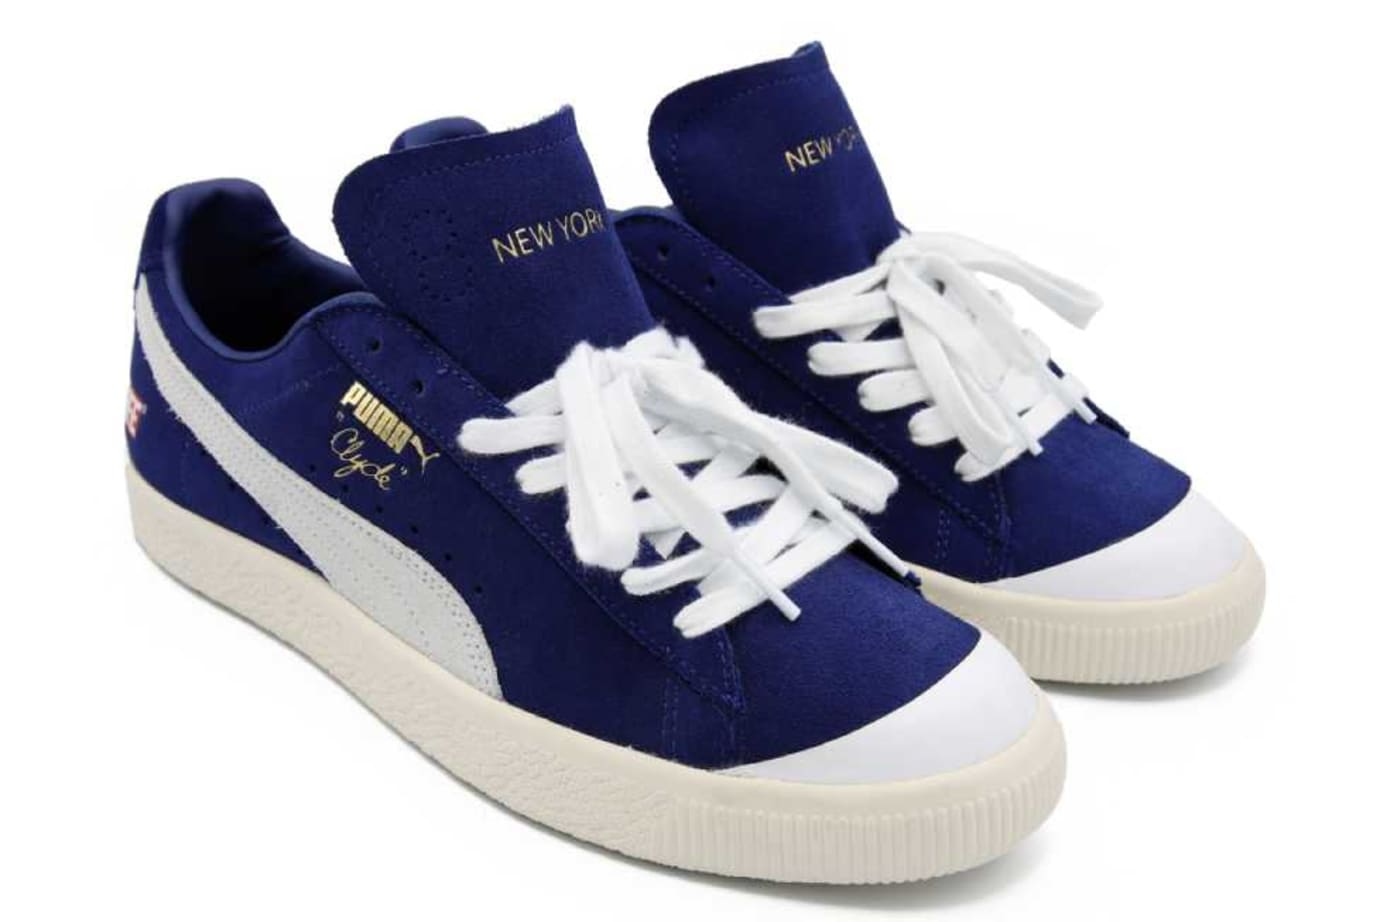 ALIFE x Puma Clyde Blue Release Date Front